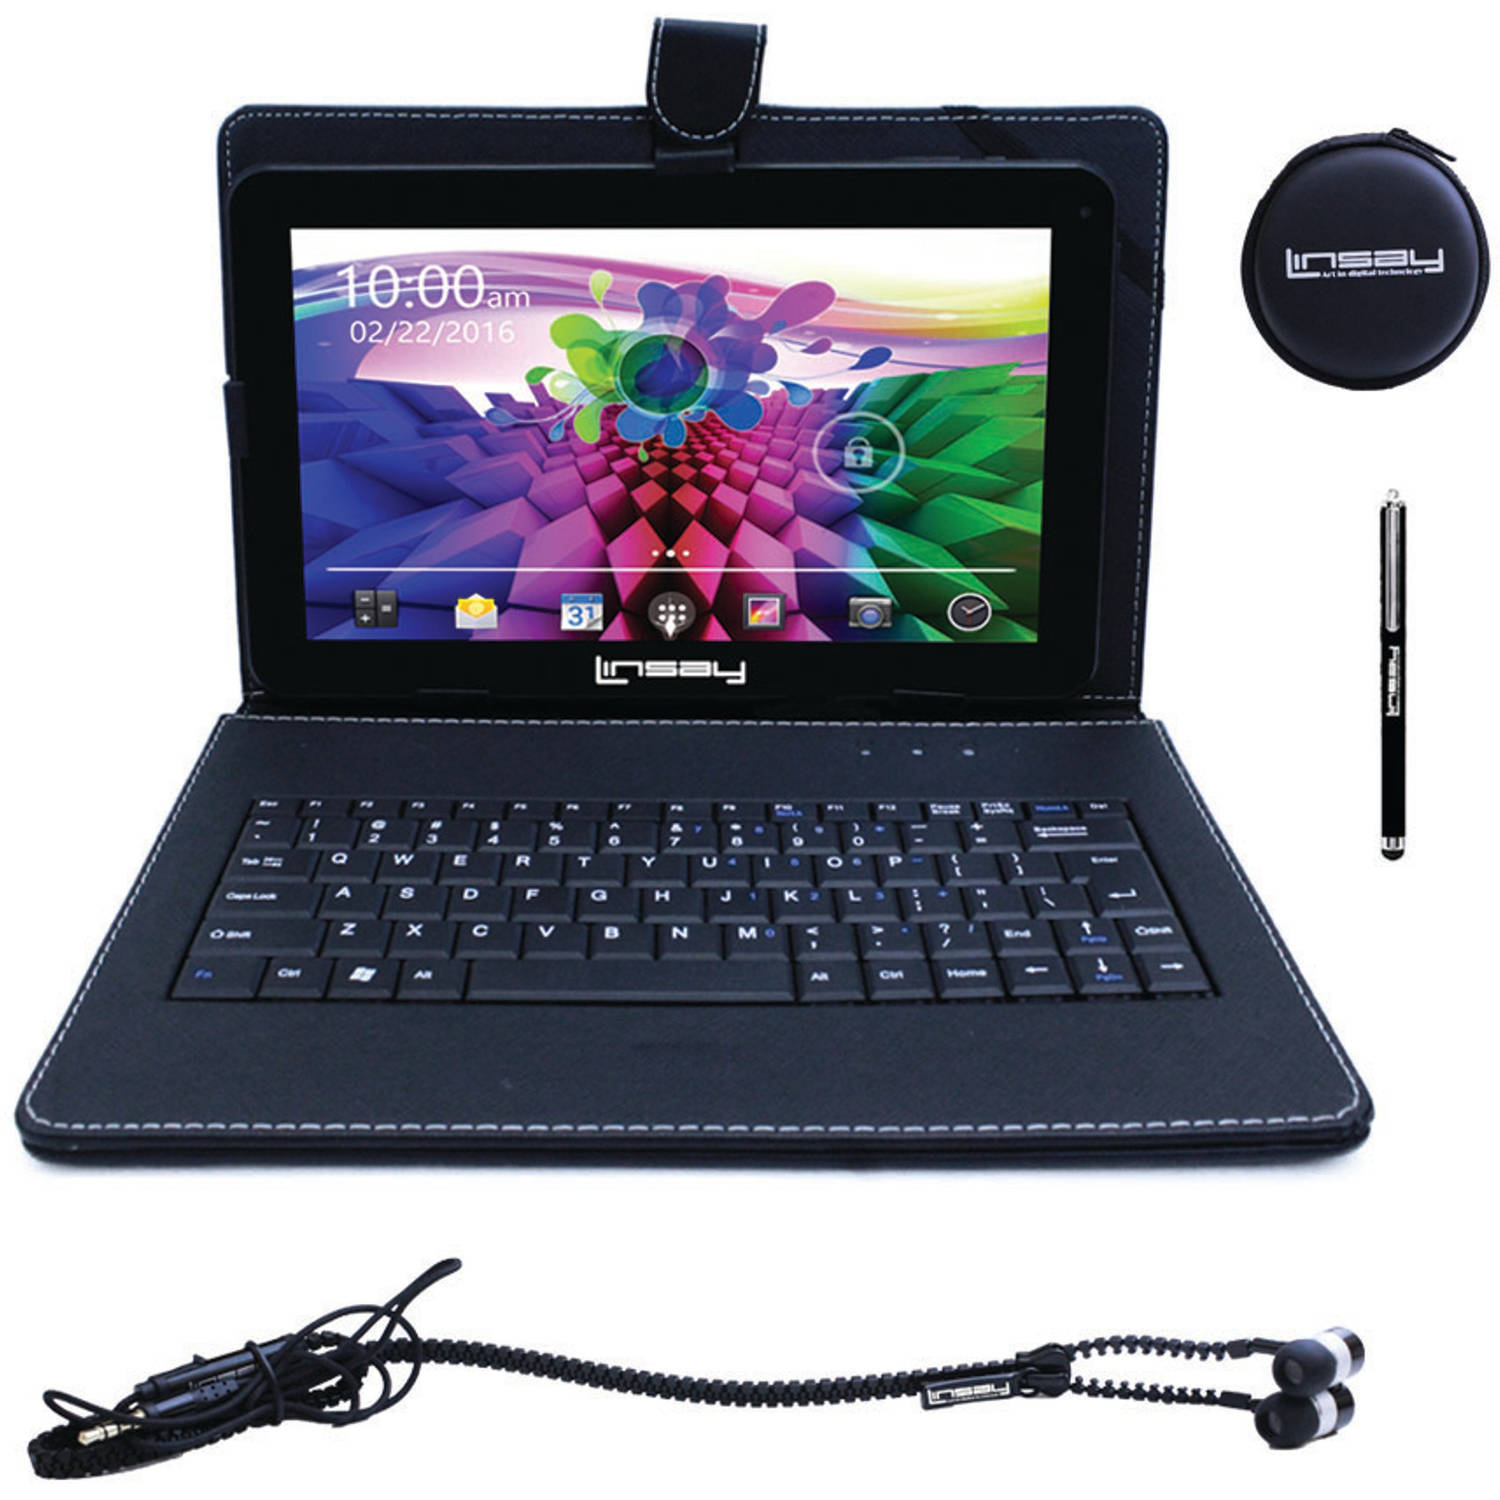 "LINSAY 10.1"" Touchscreen Quad-Core Tablet PC Featuring Android 4.4 (KitKat) Operating System Super Bundle with Black Keyboard, Earphones and Pen Stylus"